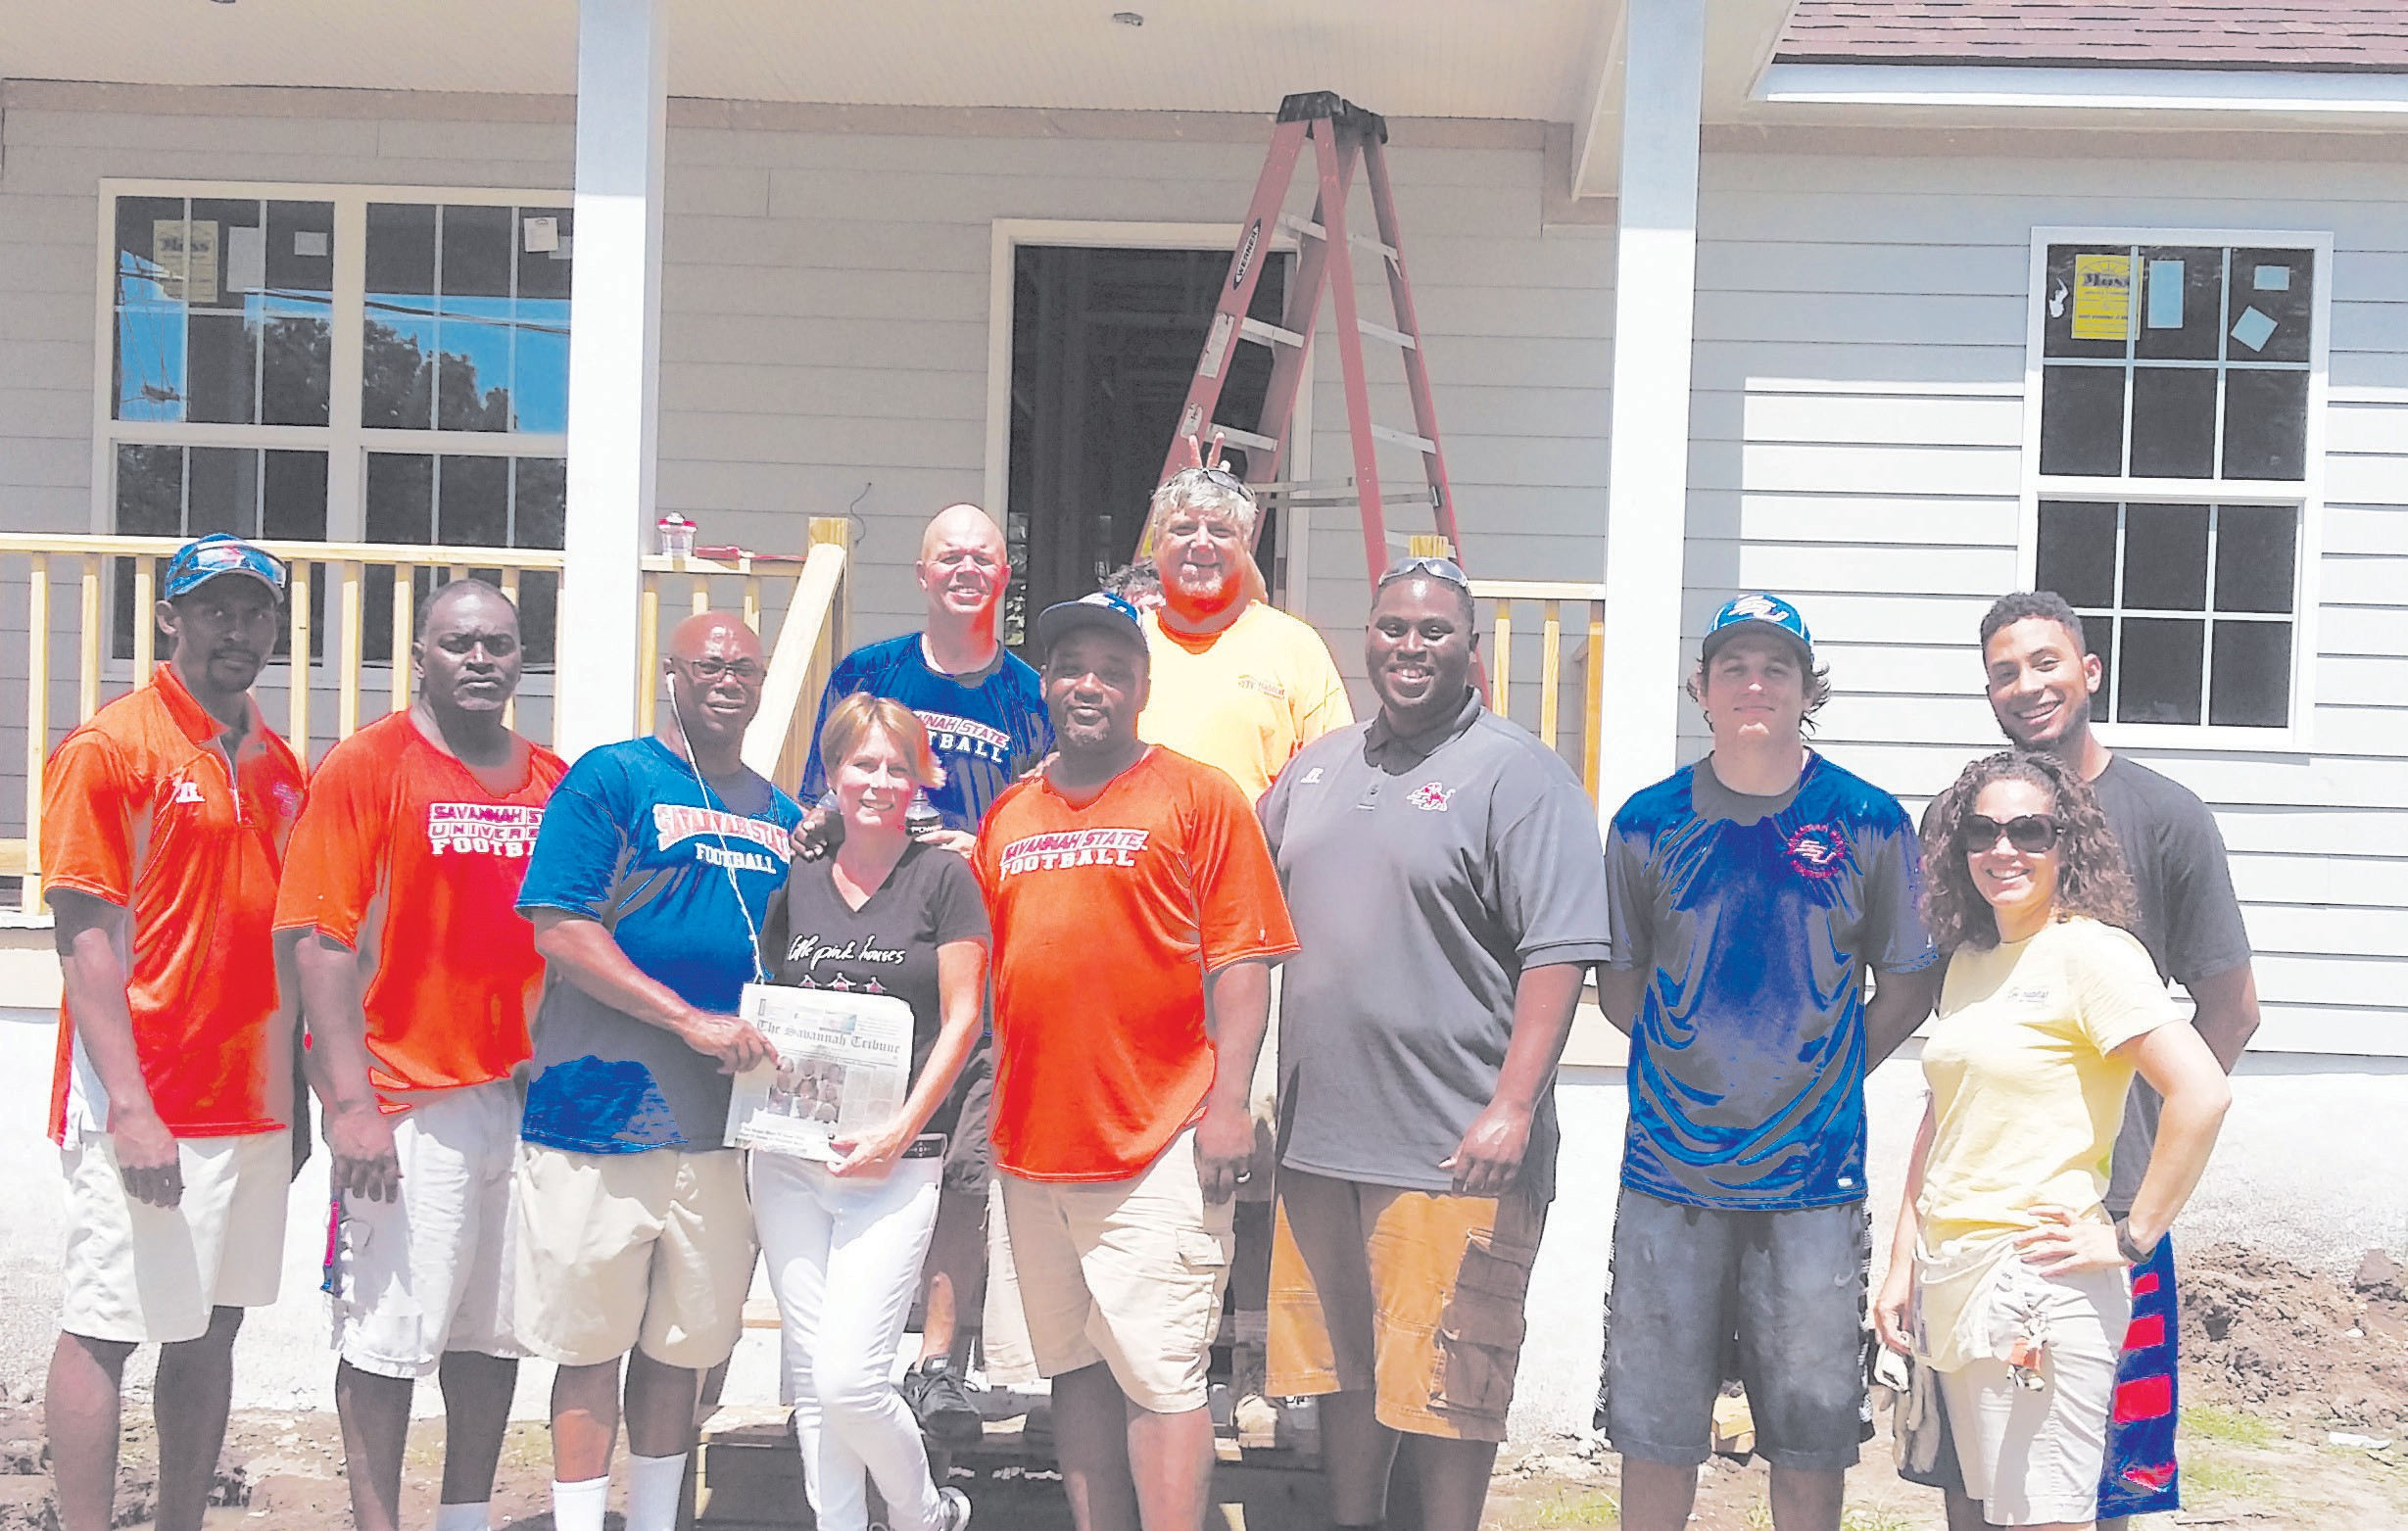 SSU Football Coahing Staff including Danita Townsend and head football coach Ernest Wilson volunteer in building a house for Coastal Empire Habitat for Humanity